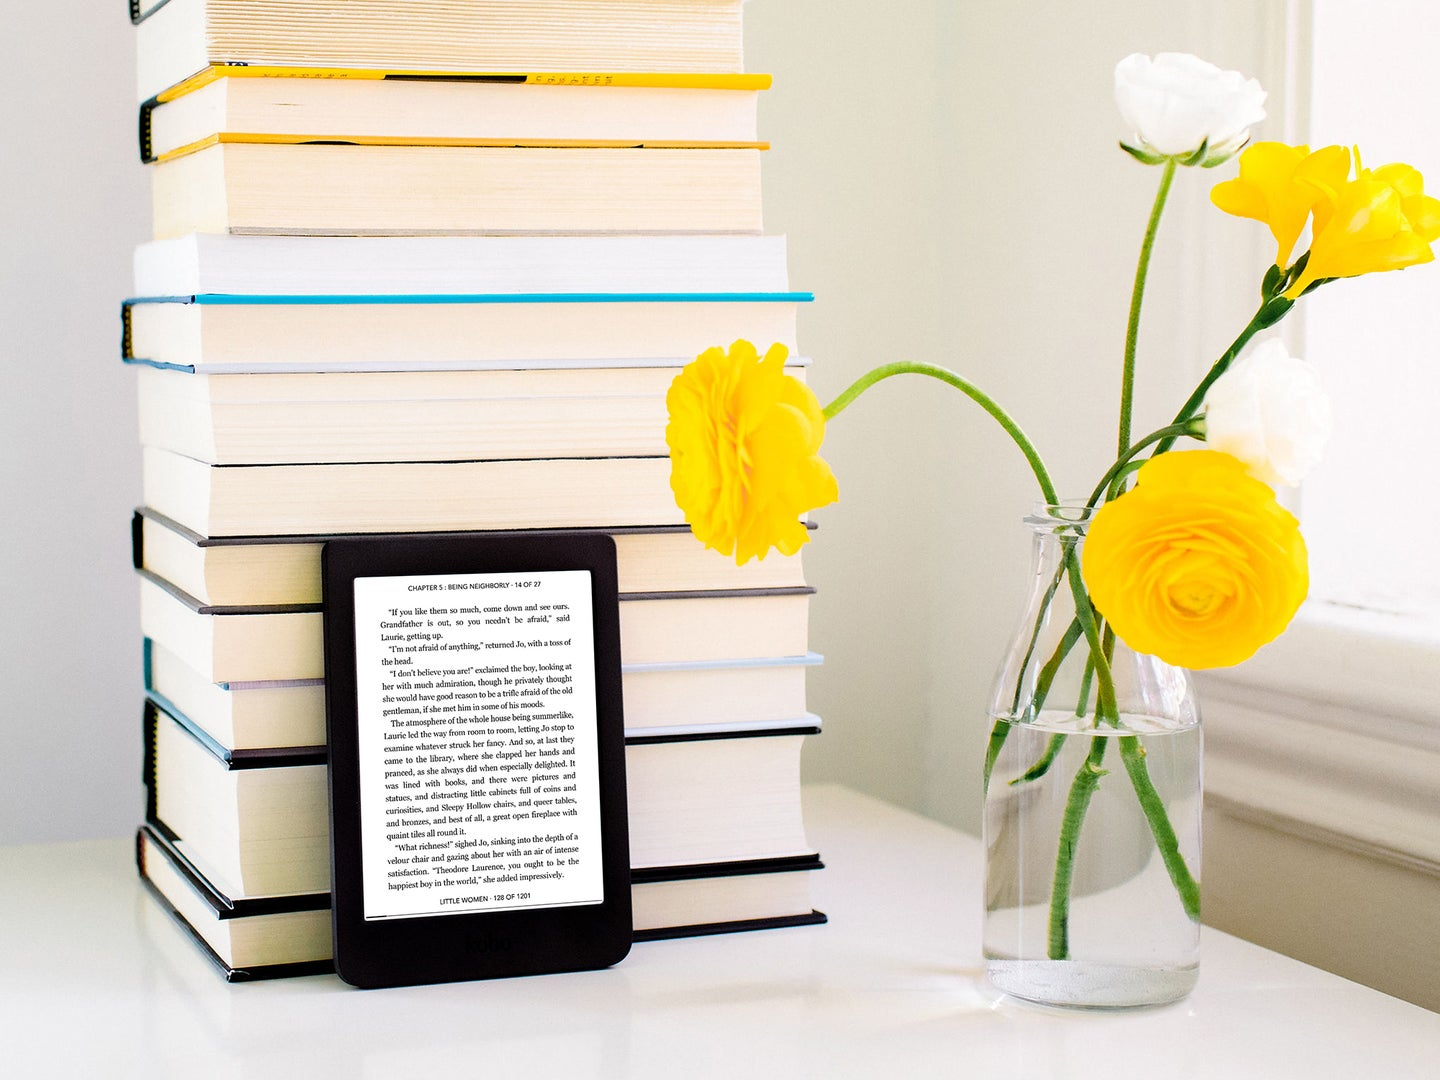 A Kobo e-reader leaning against a stack of books next to a glass jar with yellow flowers in it.